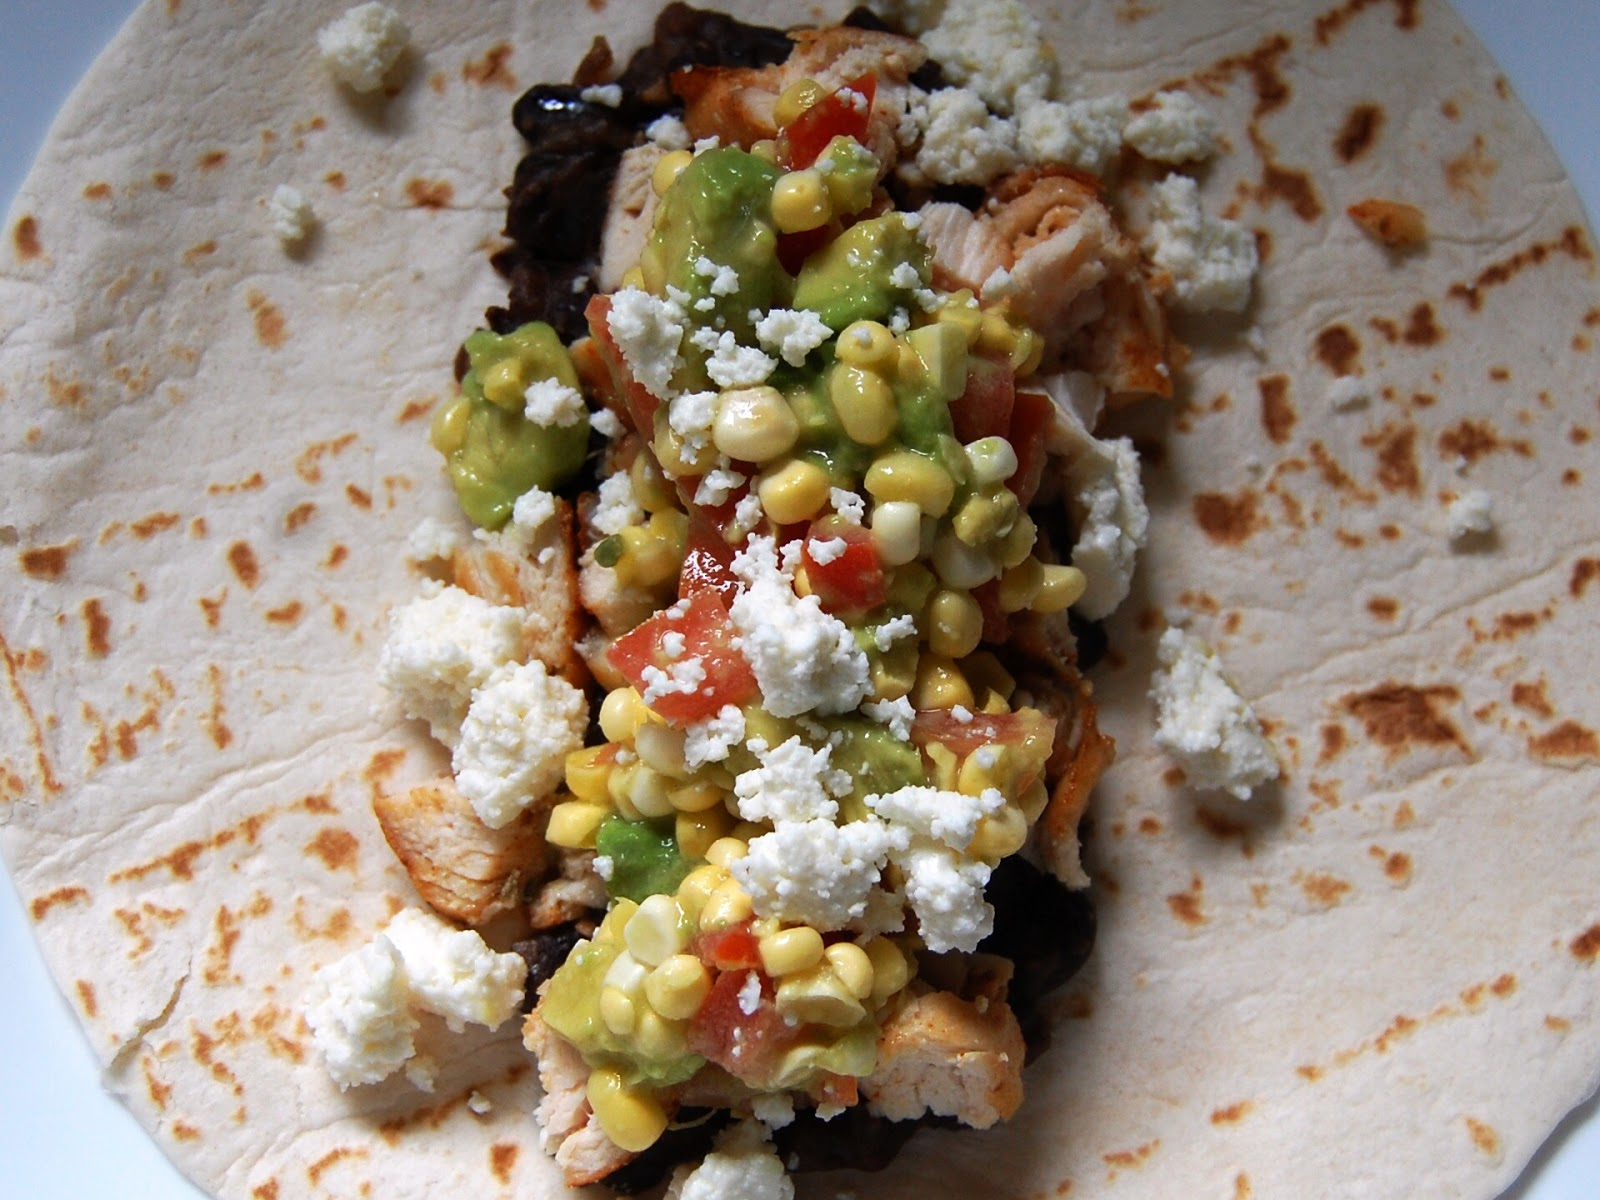 Chicken Tacos with Mashed Black Beans and Avocado-Sweet Corn Relish